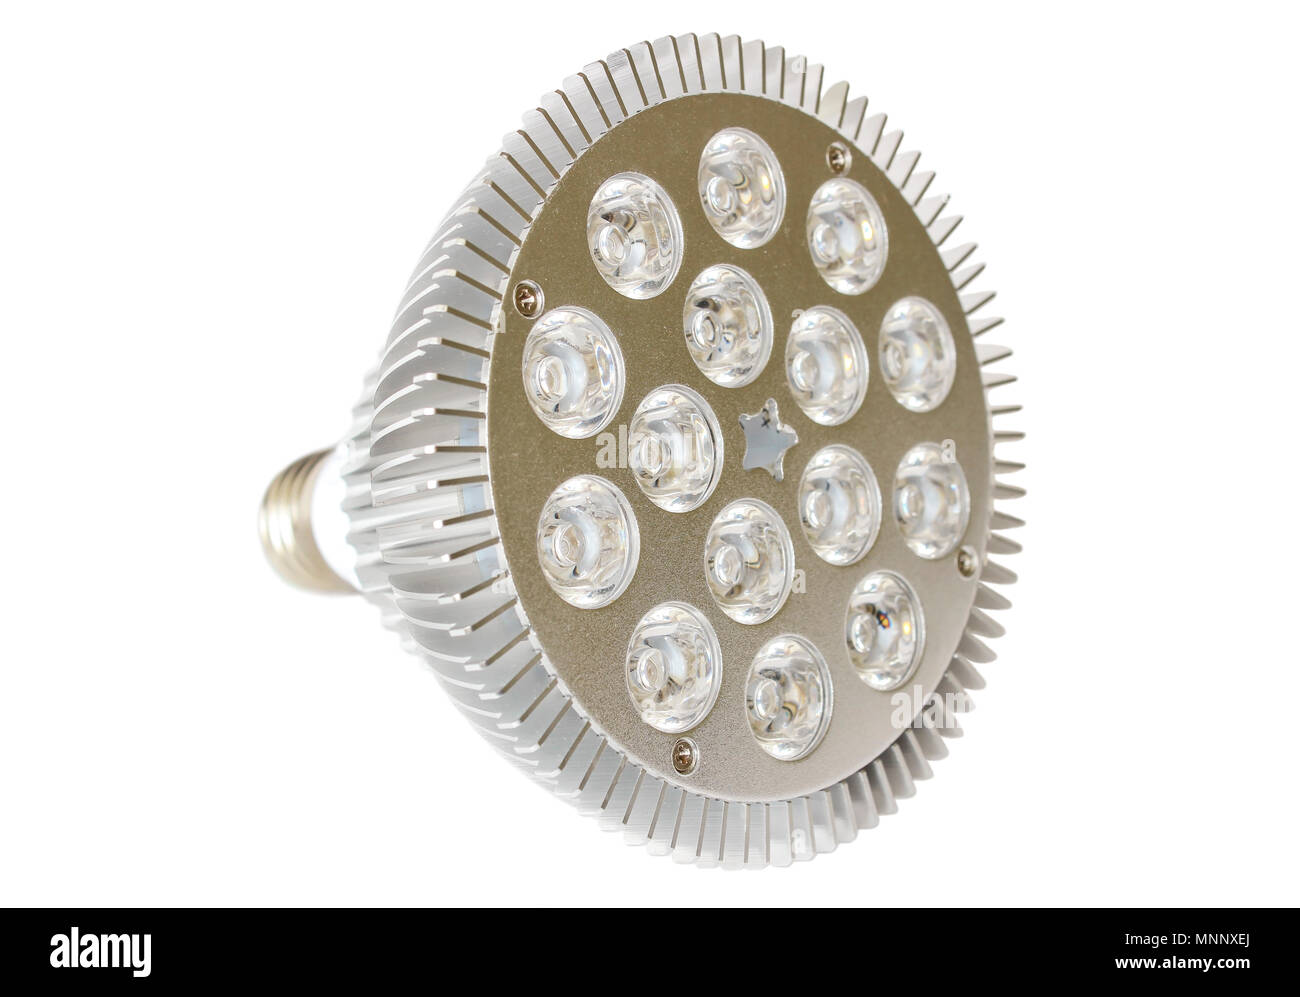 LED lamp closeup isolated on white background - Stock Image